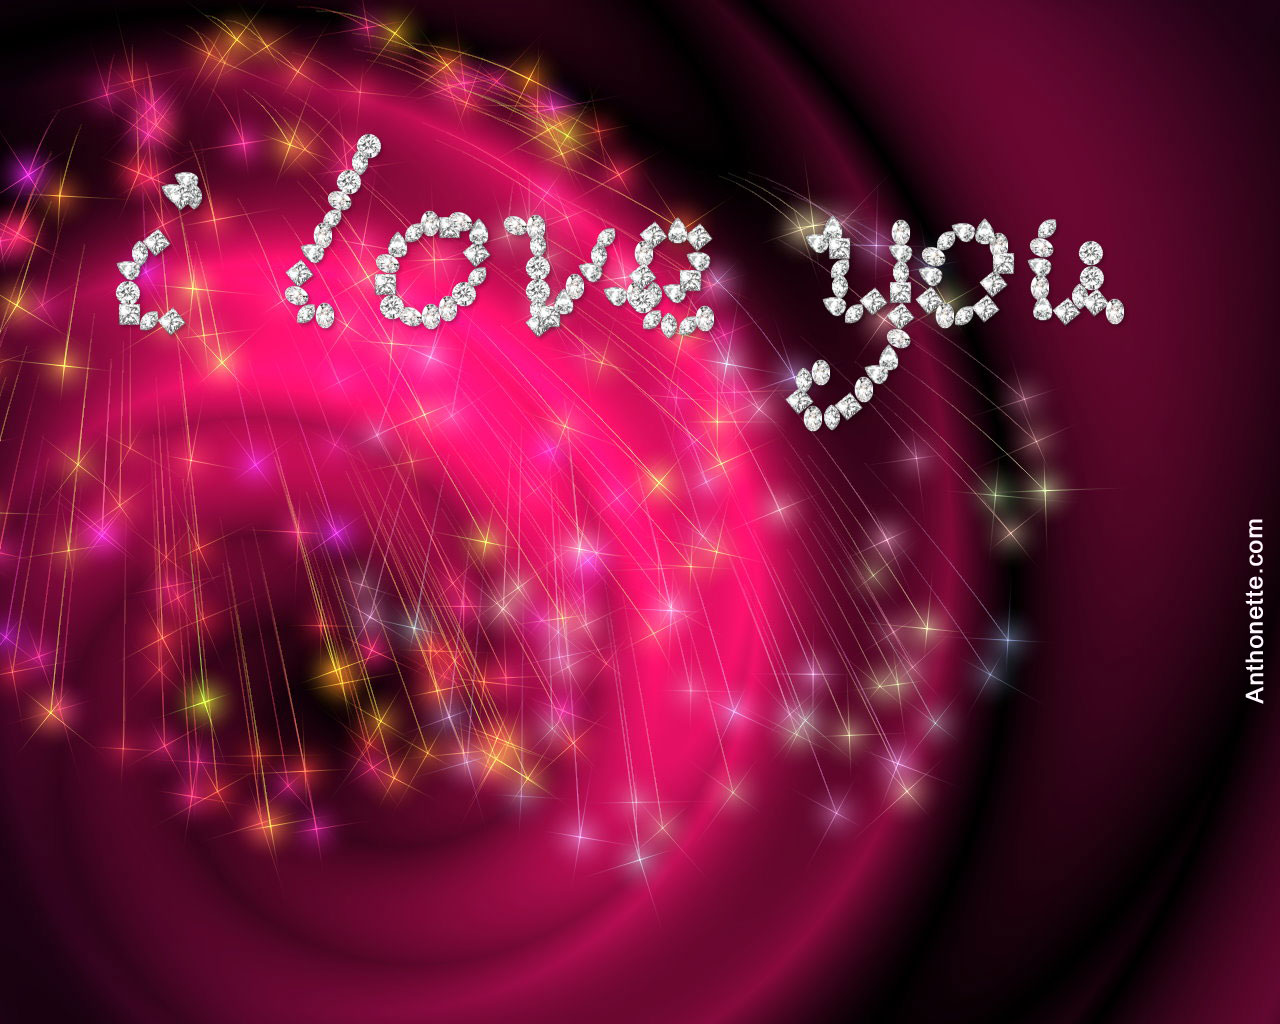 Wallpaper download of love - All Love Wallpapers For Mobile Phone Mobile Wallpaper Part 4